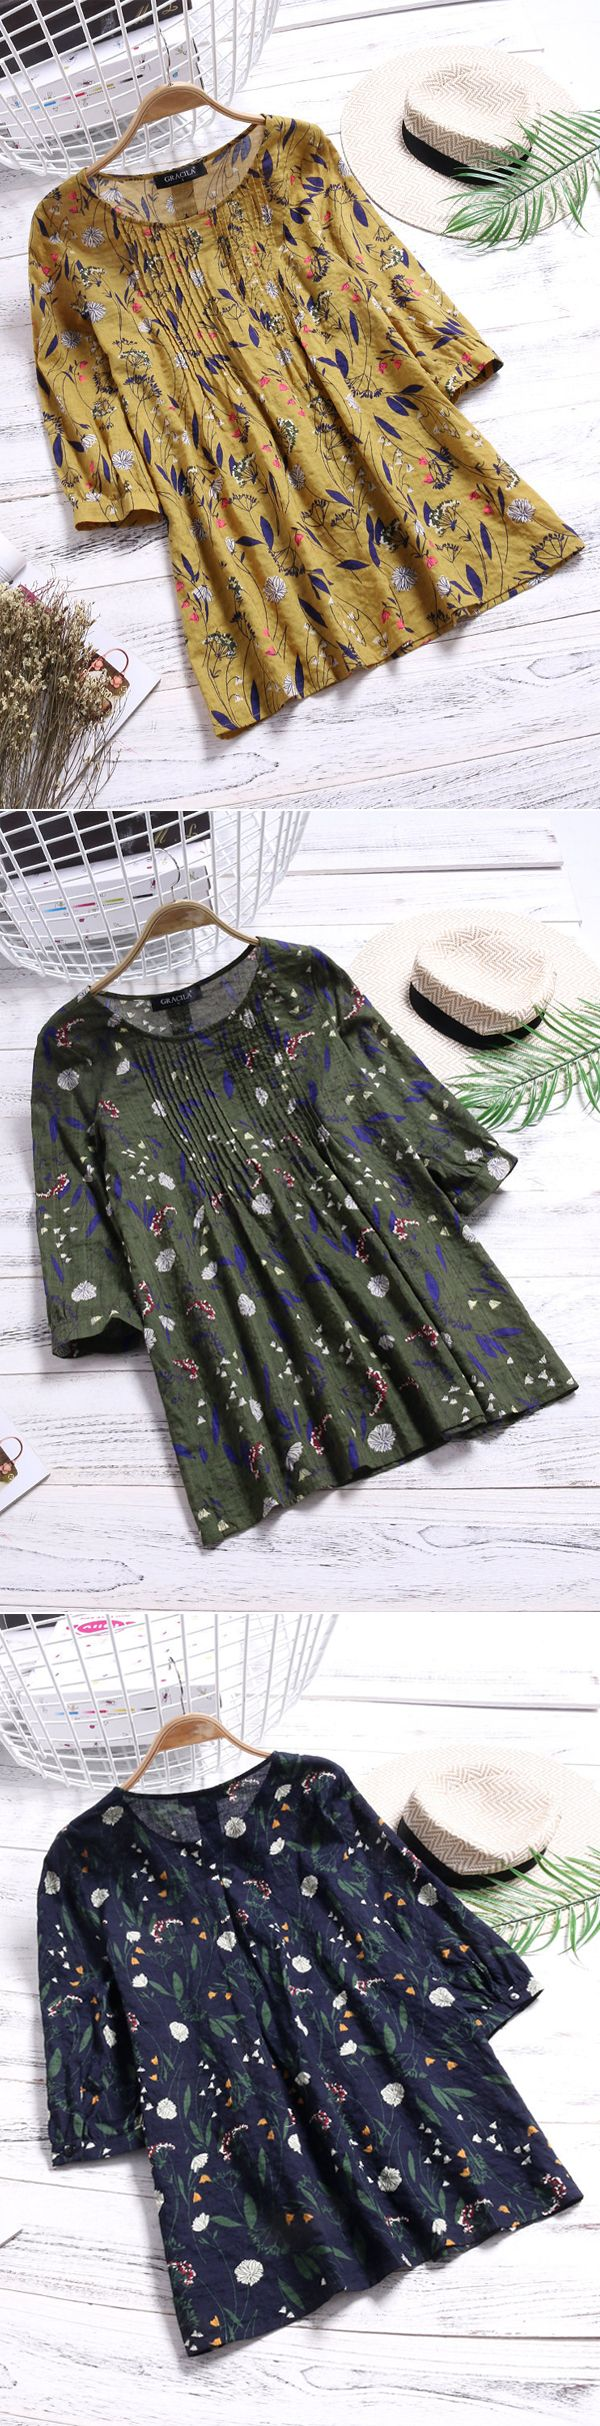 [Newchic Online Shopping] 50%OFF Women's Vintage Blouses | Women's 3/4 Sleeve Blouses | Women's Floral Printed Blouses